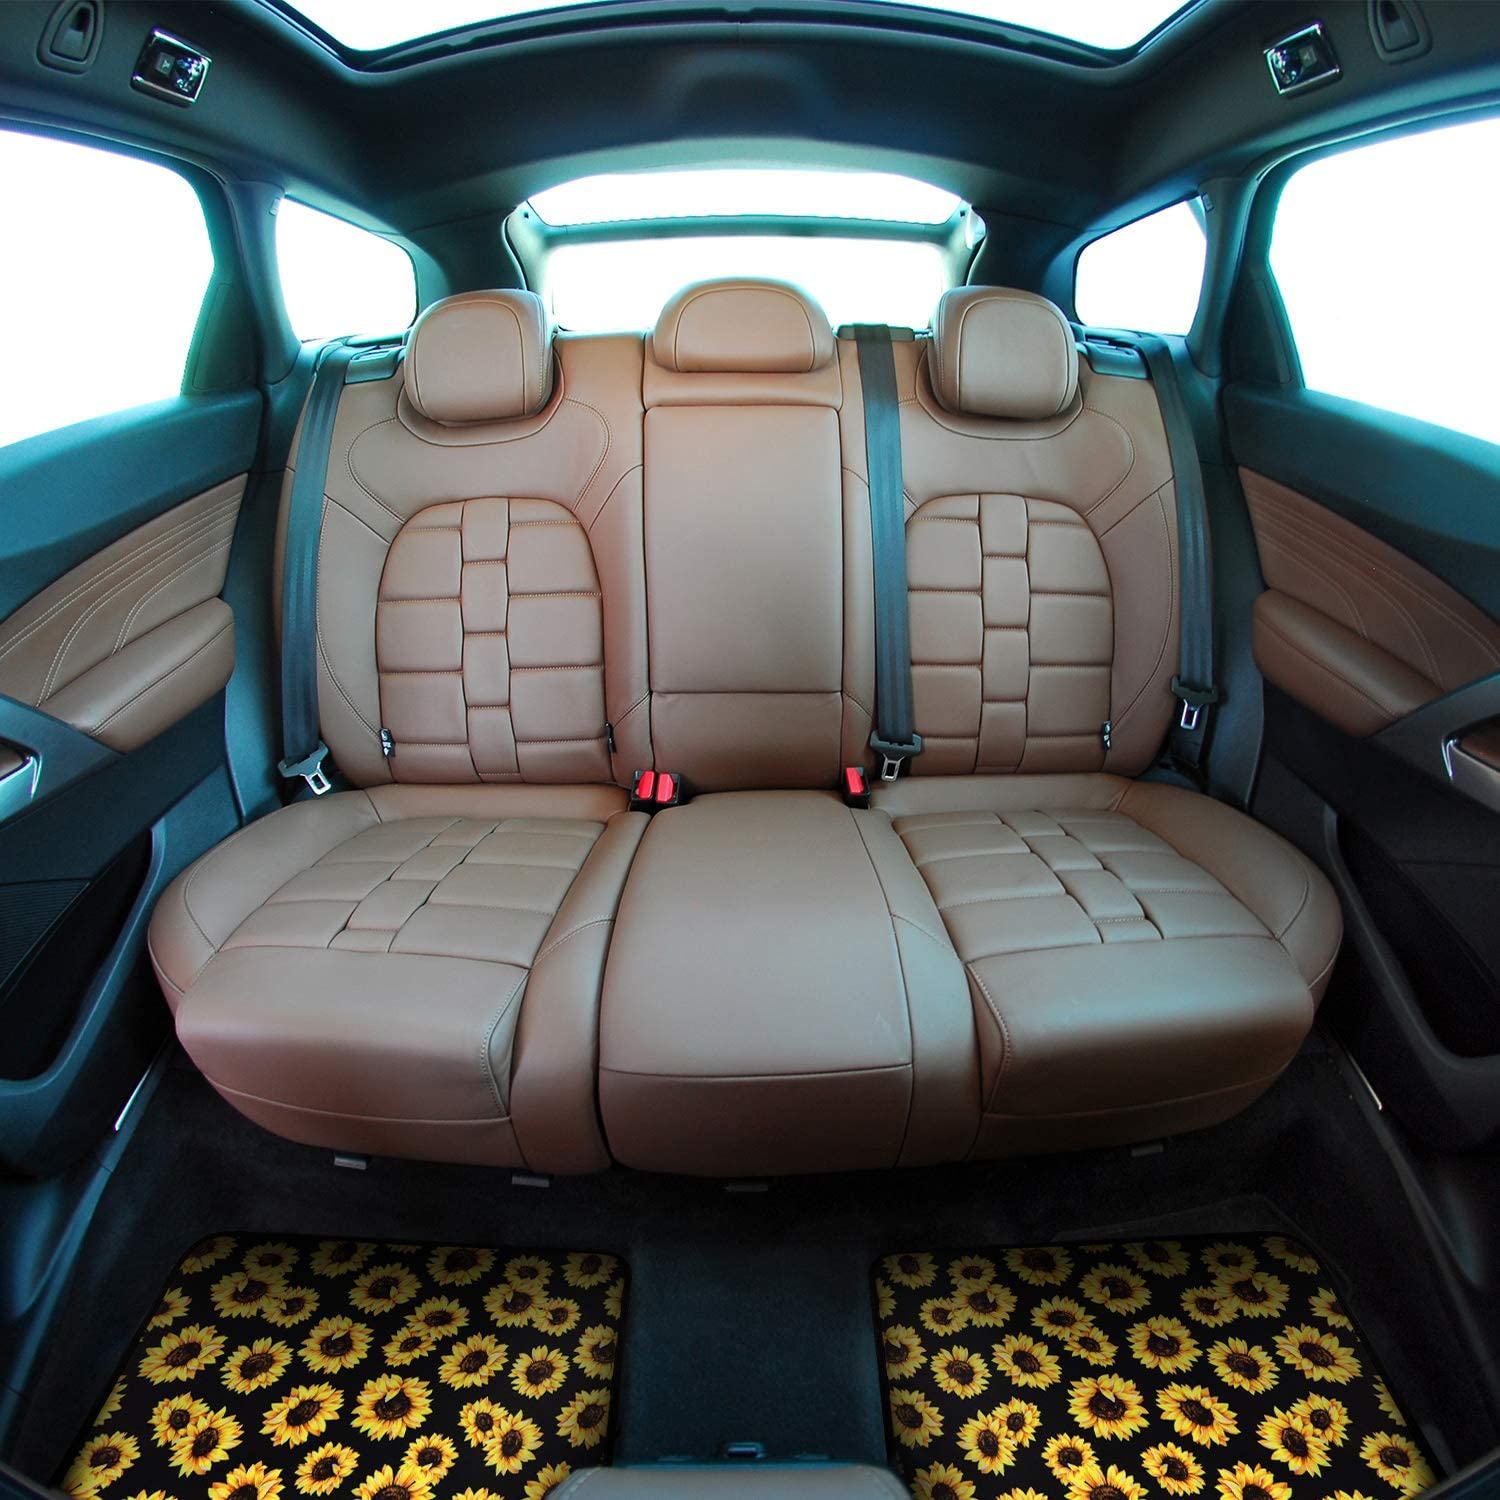 BBTO 5 Pieces Sunflower Car Accessories Include Sunflower Car Floor Mats Set Front Rear Mats and Sunflower Steering Wheel Cover for Most Cars All Weather Protection Interior Decoration